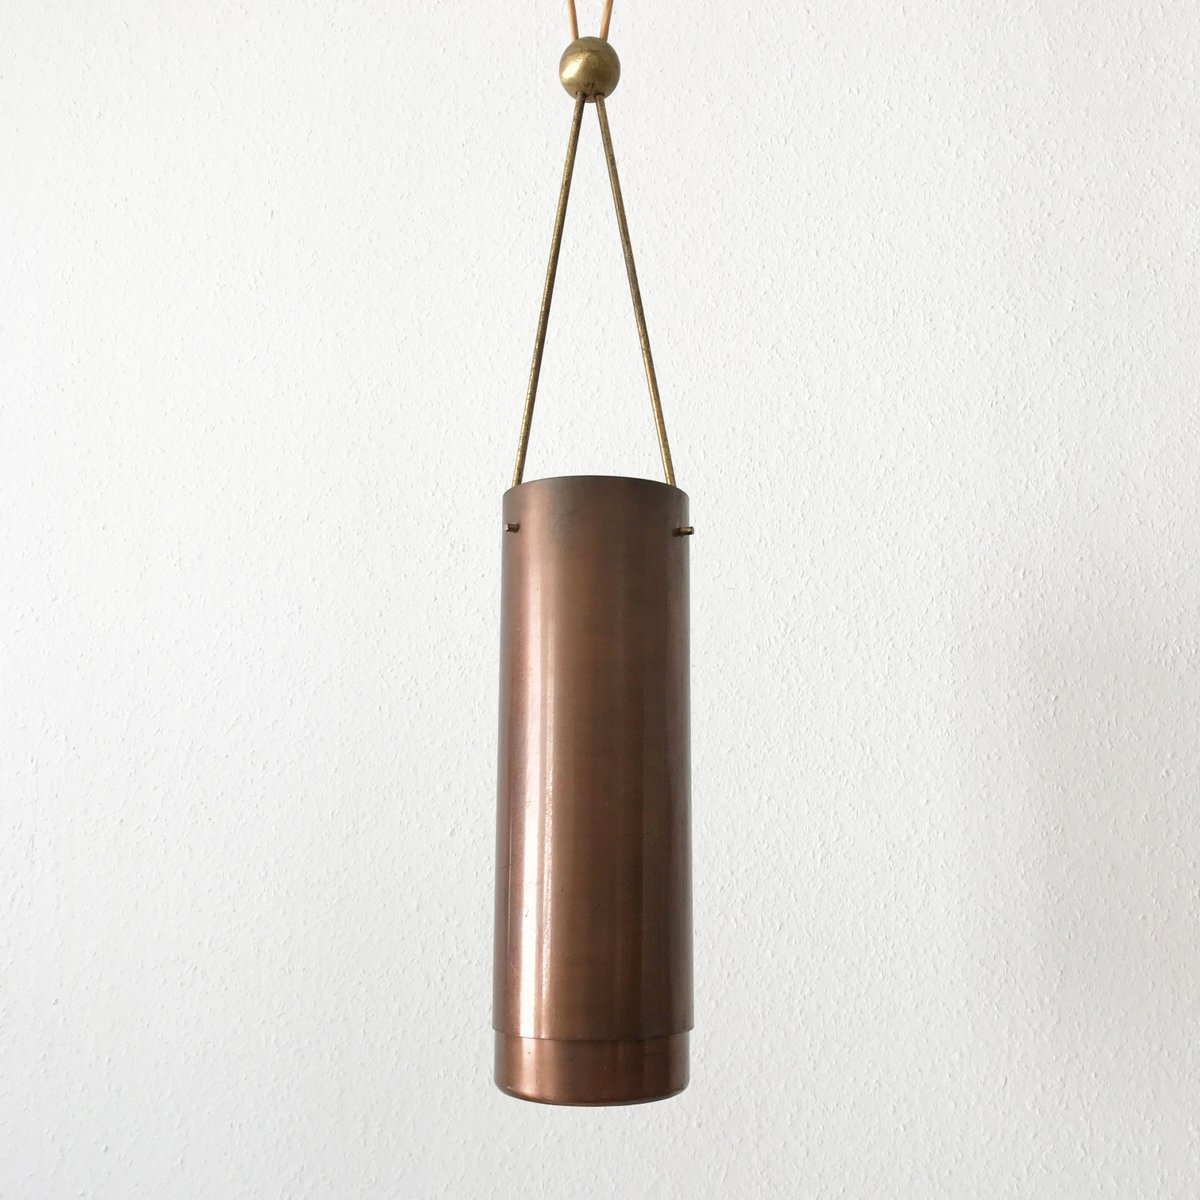 Mid century modern cylindrical pendant light 1950s for for Mid century modern hanging lamp